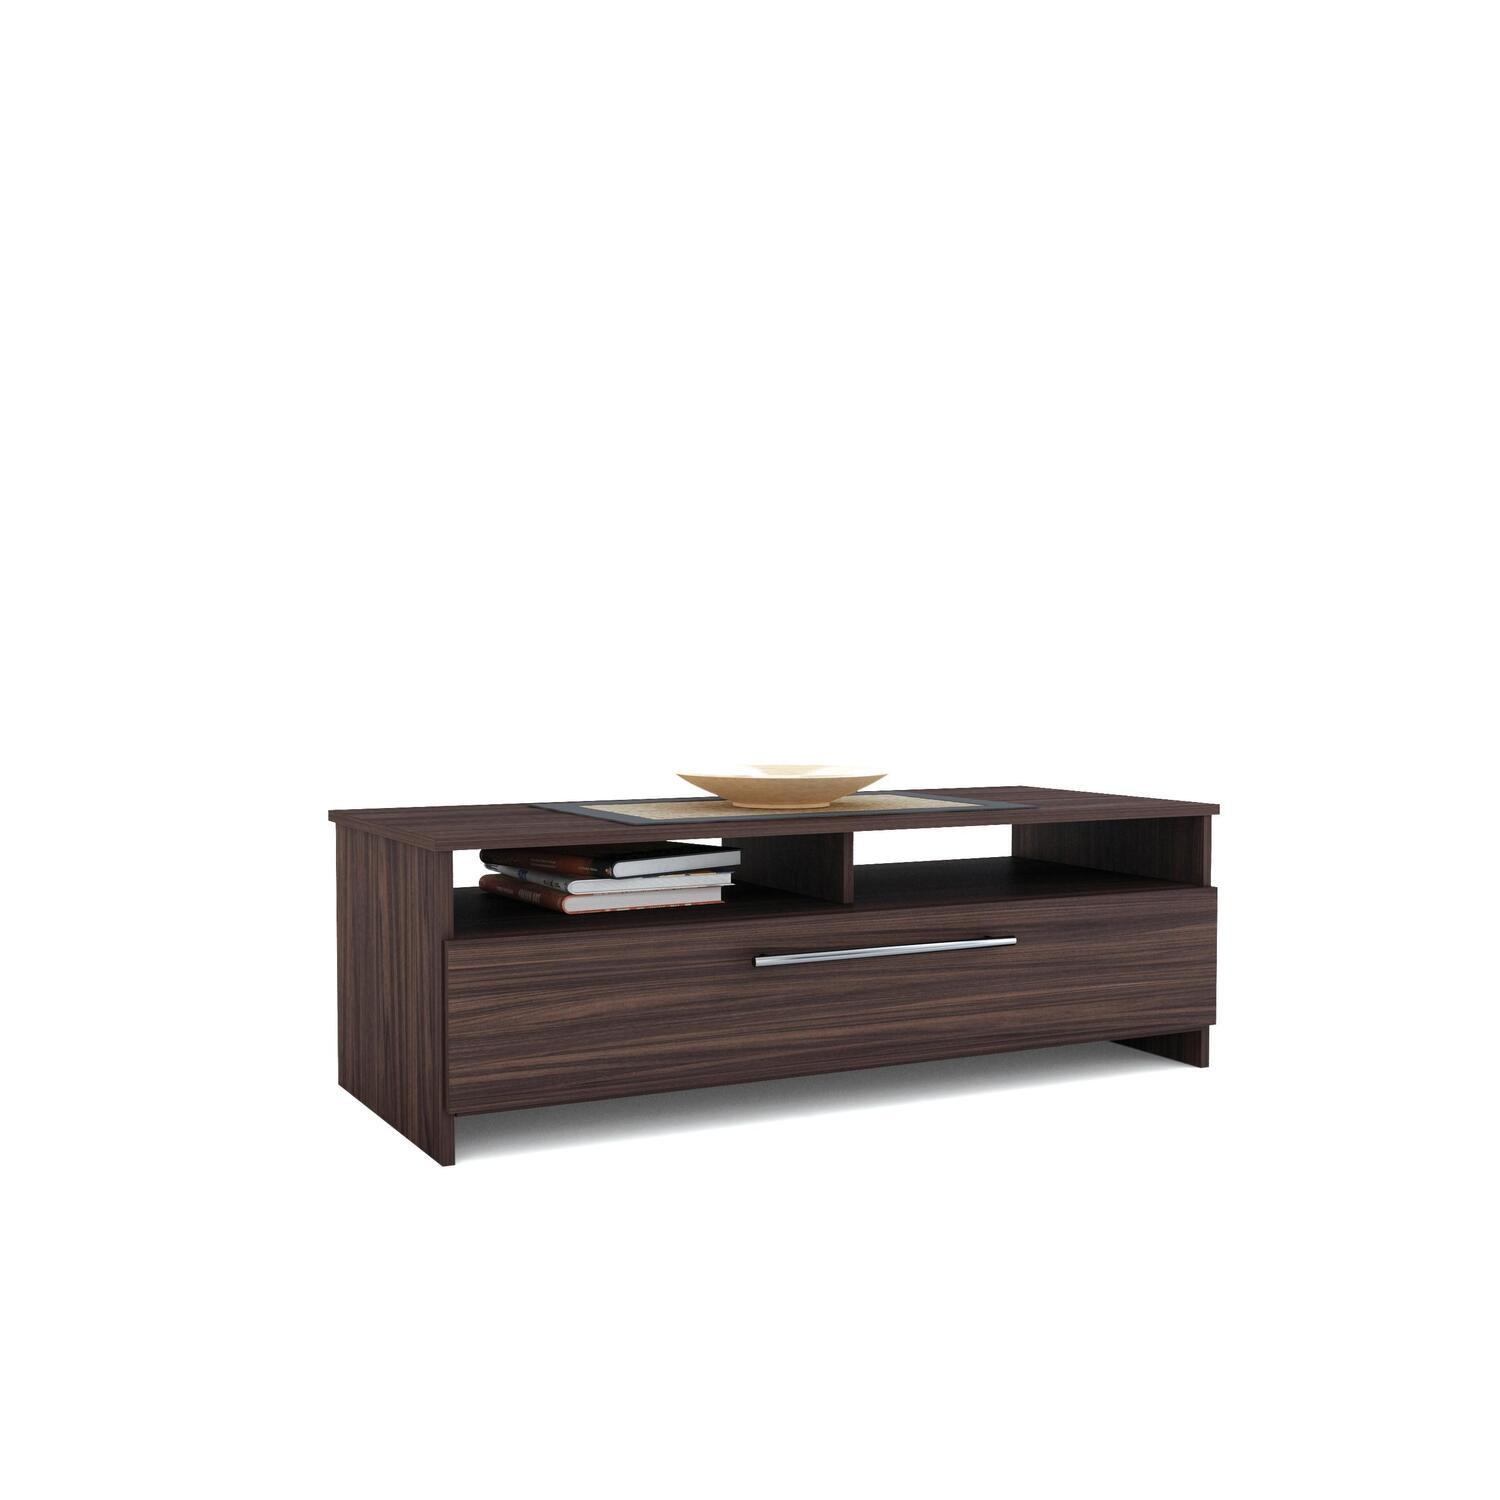 Sonax Woodland Coffee Table With Pull Down Door By Oj Commerce Ct 8188